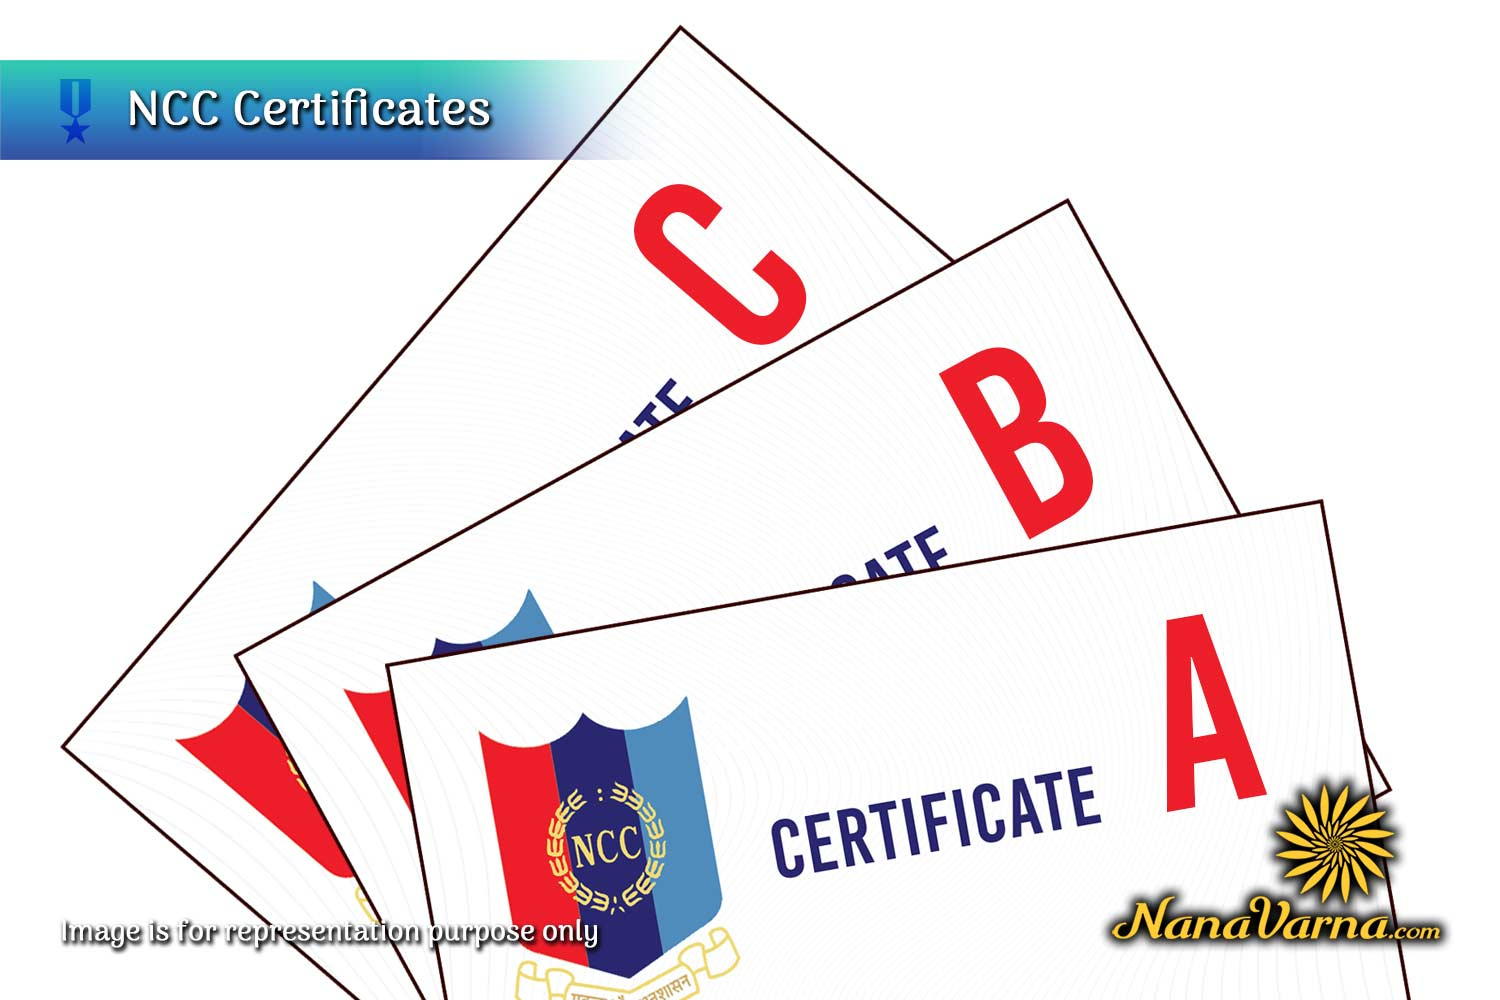 03b benefits of joining ncc